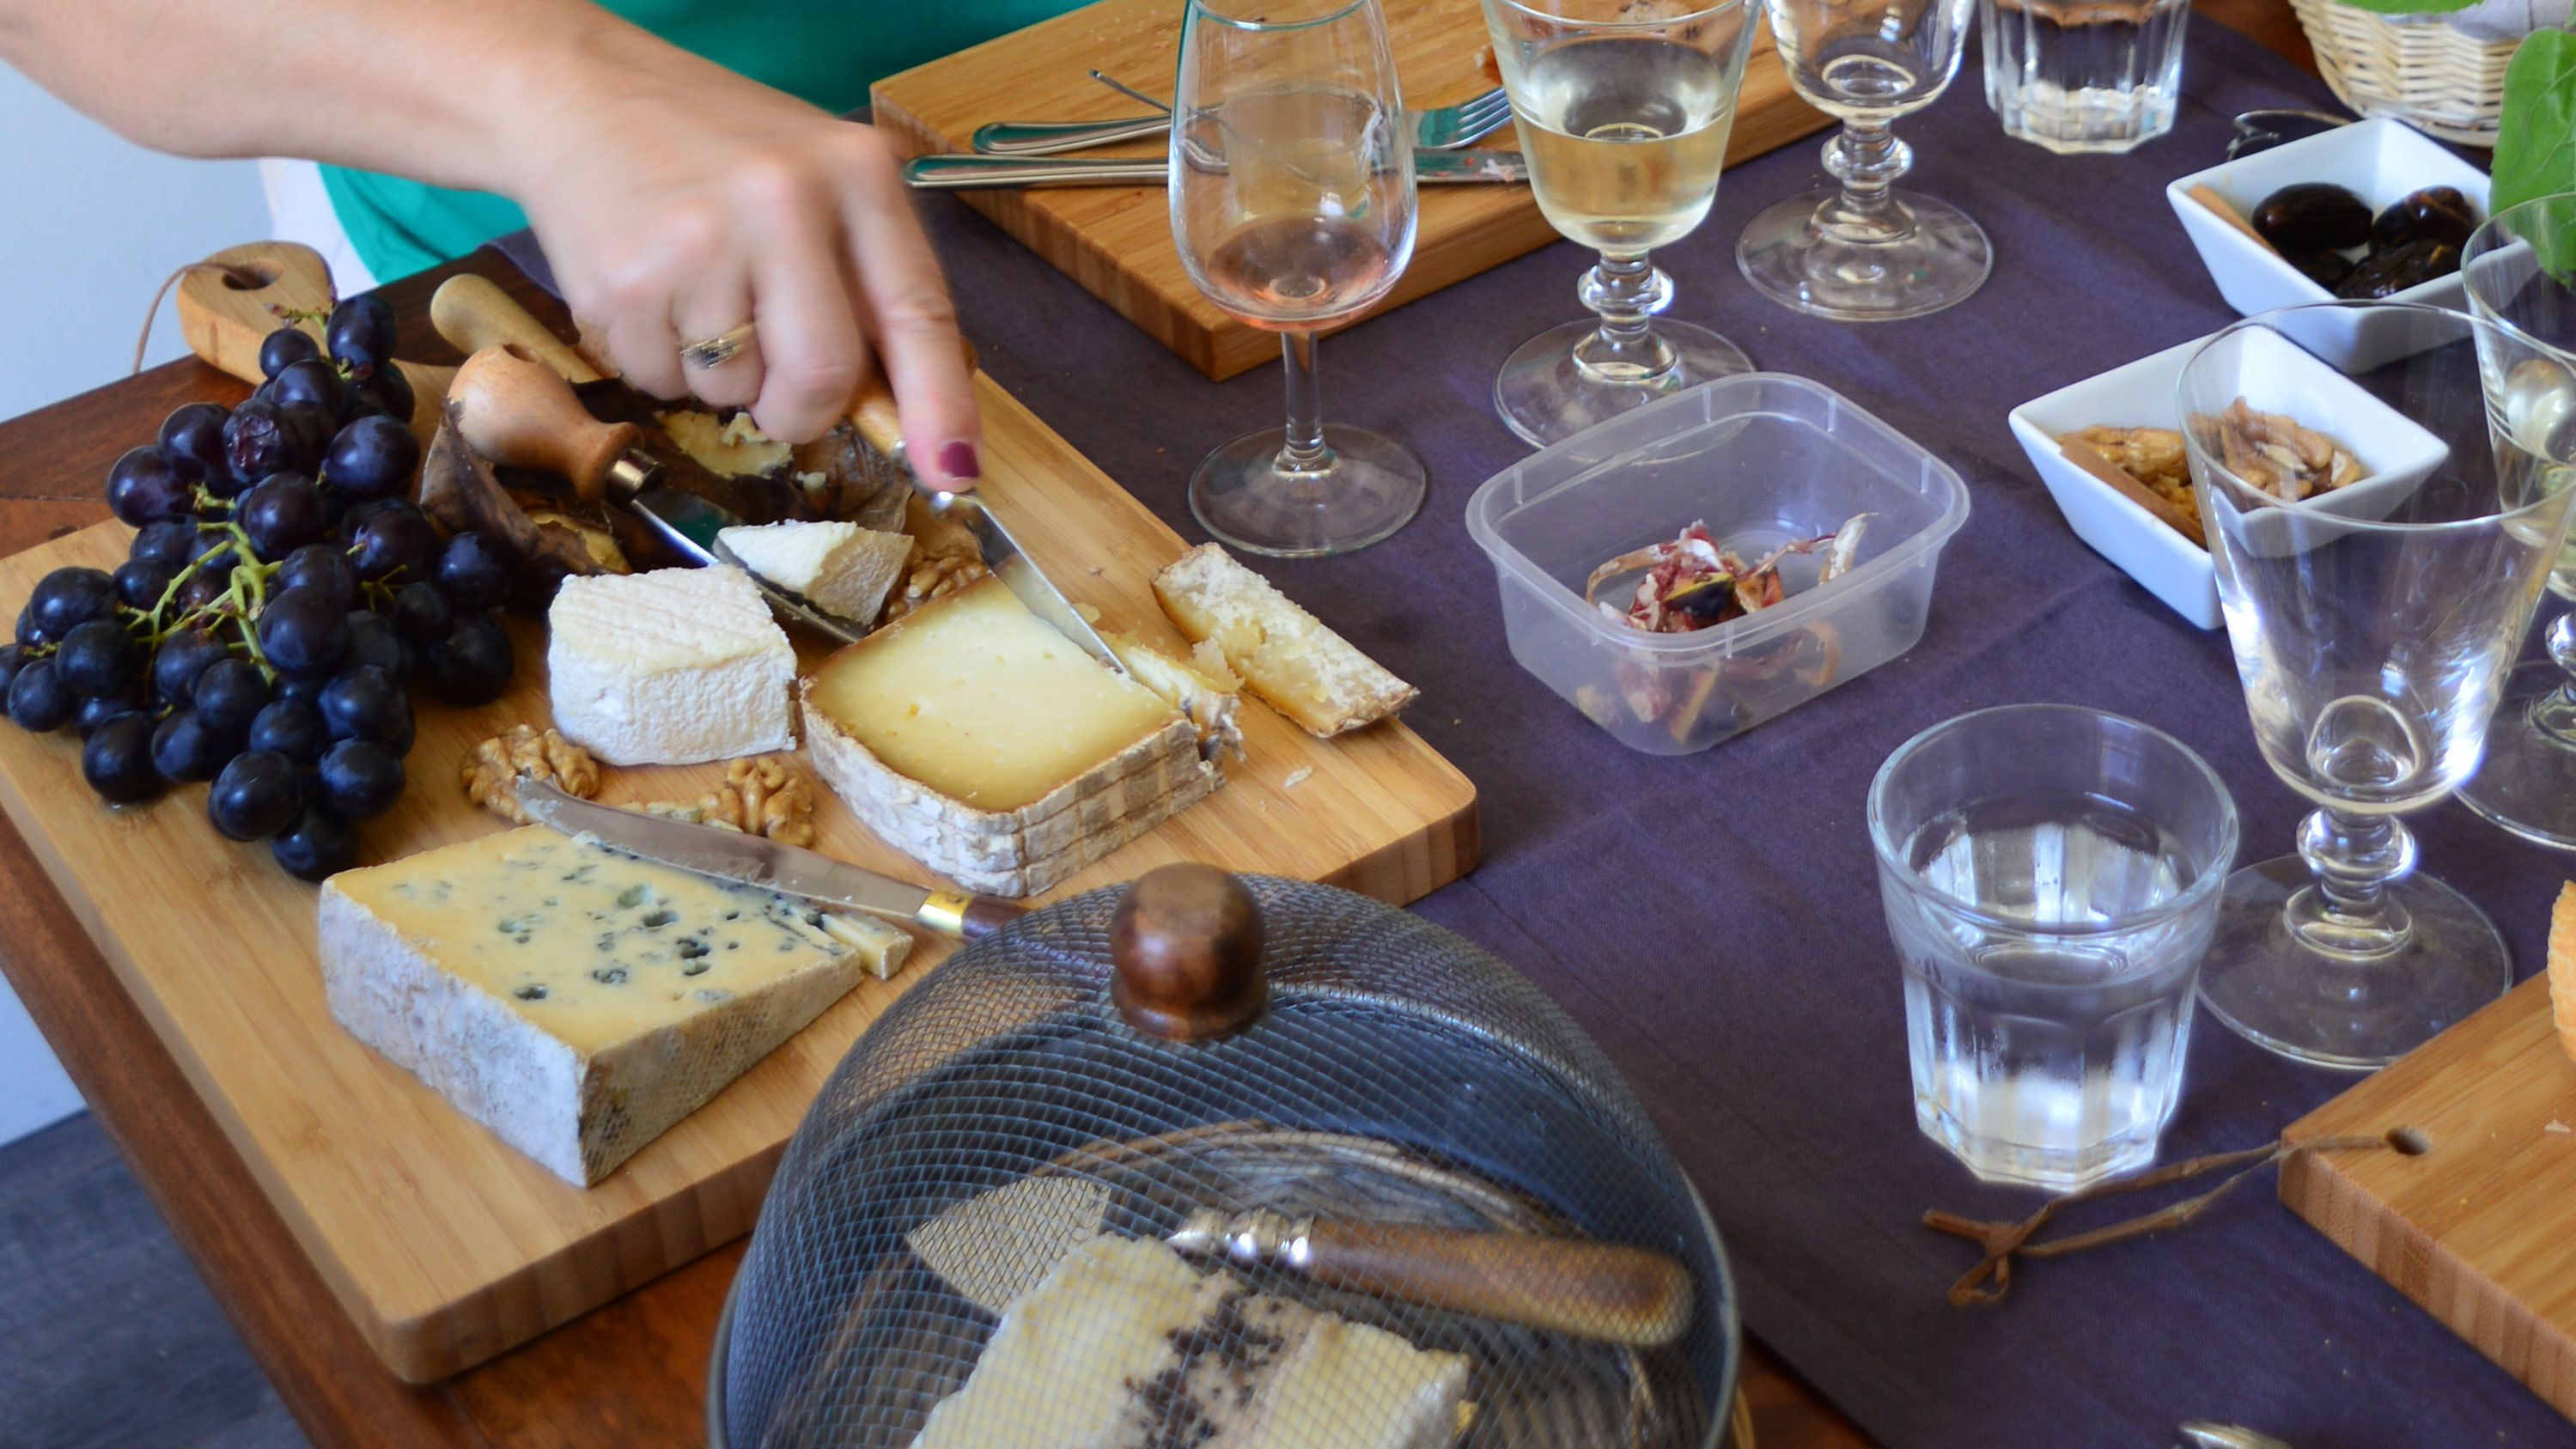 Cheese being cut at the cheese and wine tasting in Cannes